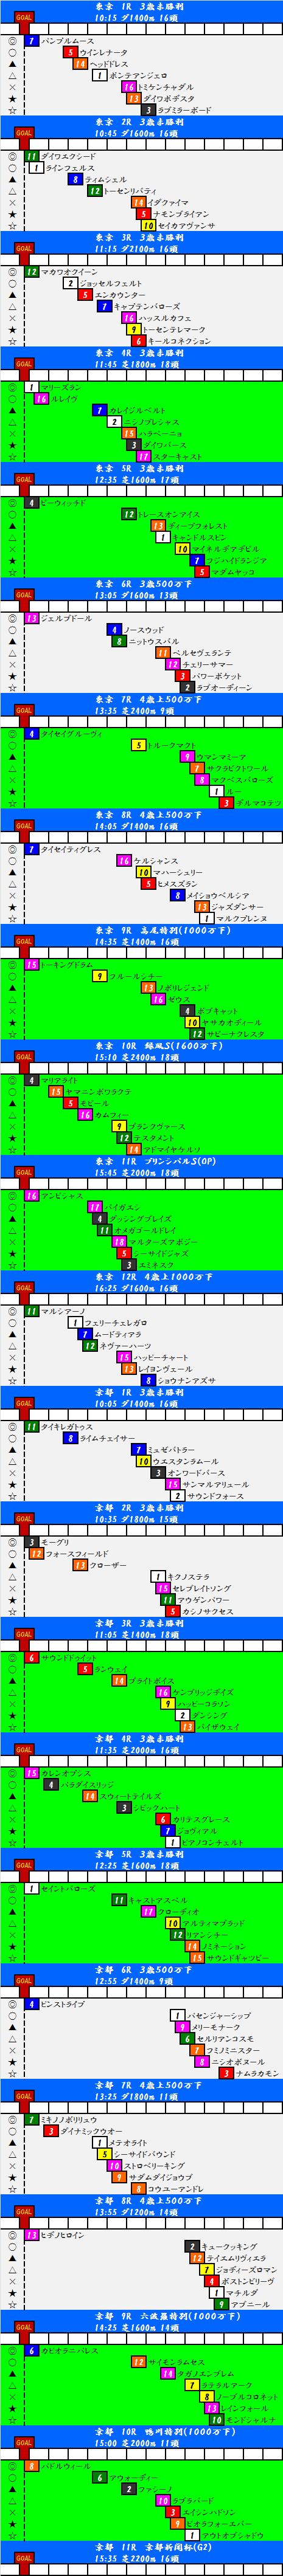 2015050901.png